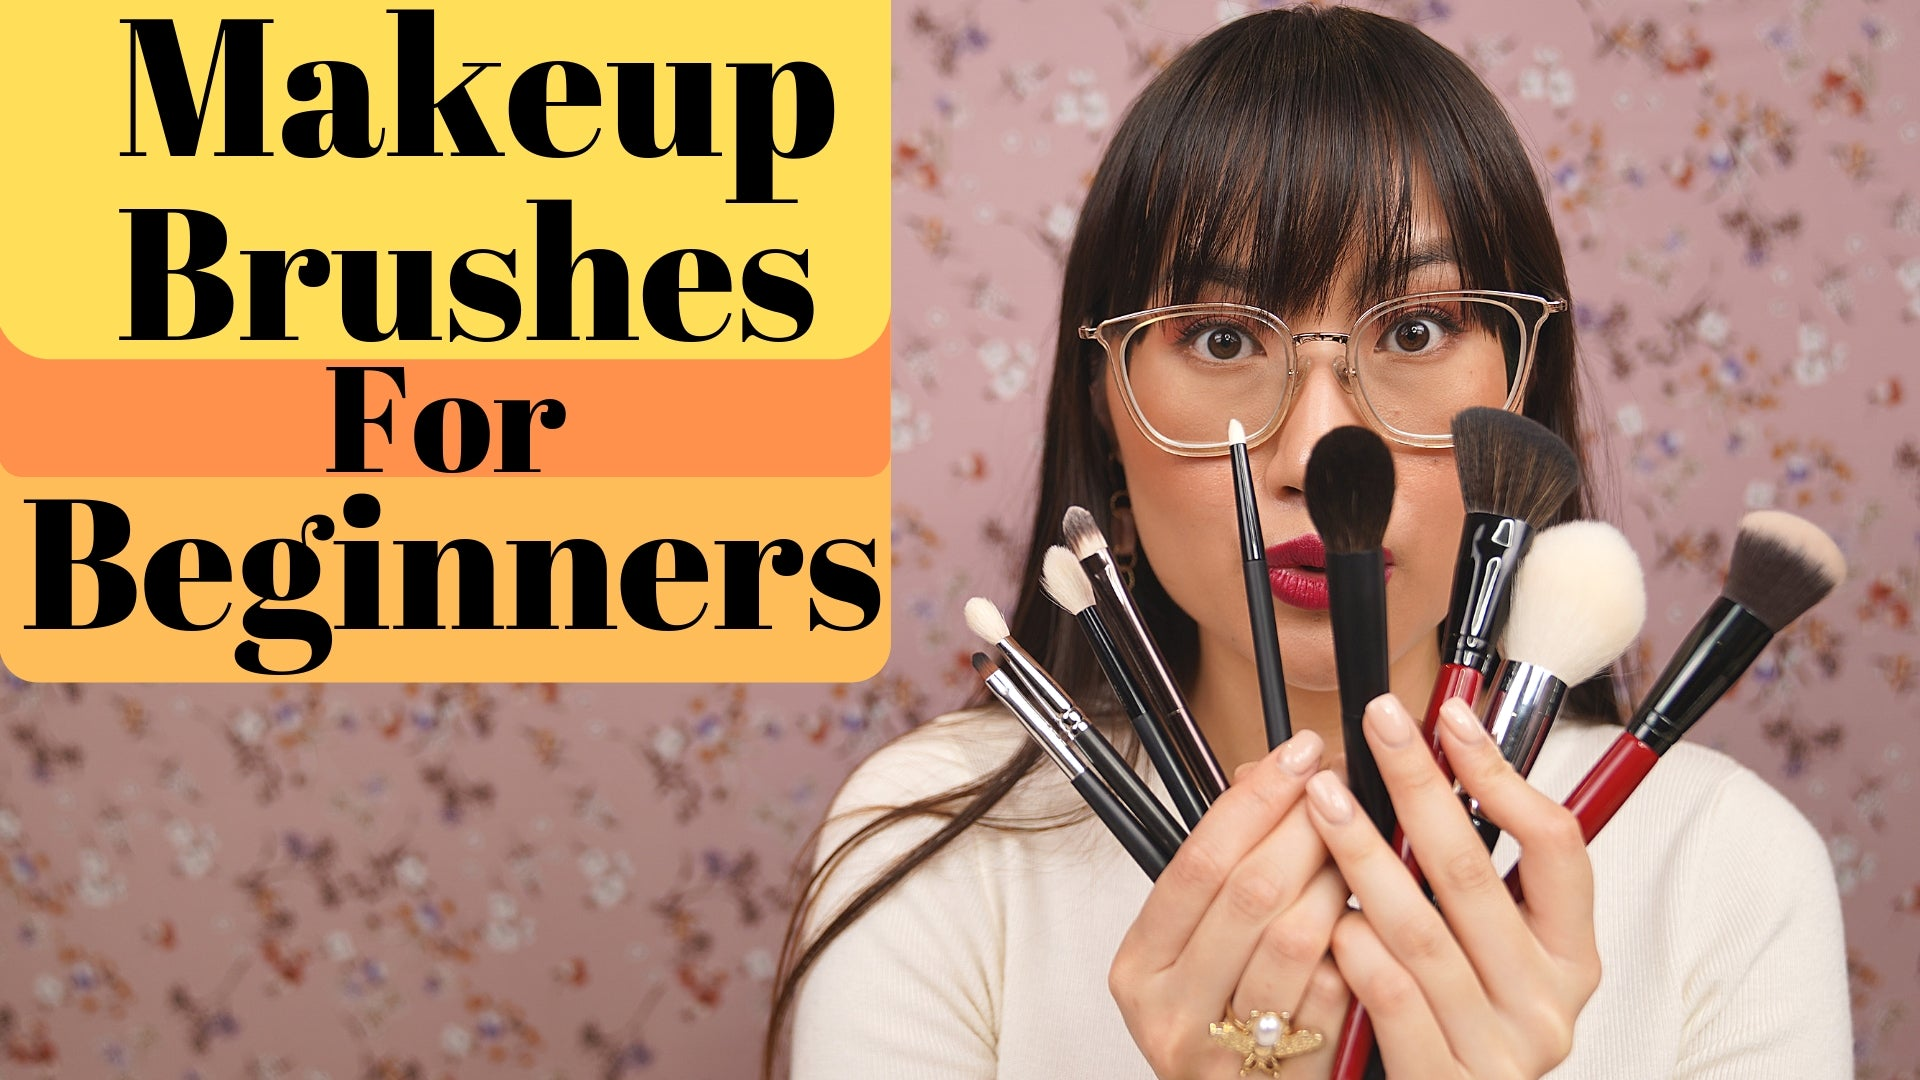 Makeup Brushes For Beginners | Zoeva | Smashbox | Body Shop | Hourglass | MAC Cosmetics | Rae Morris